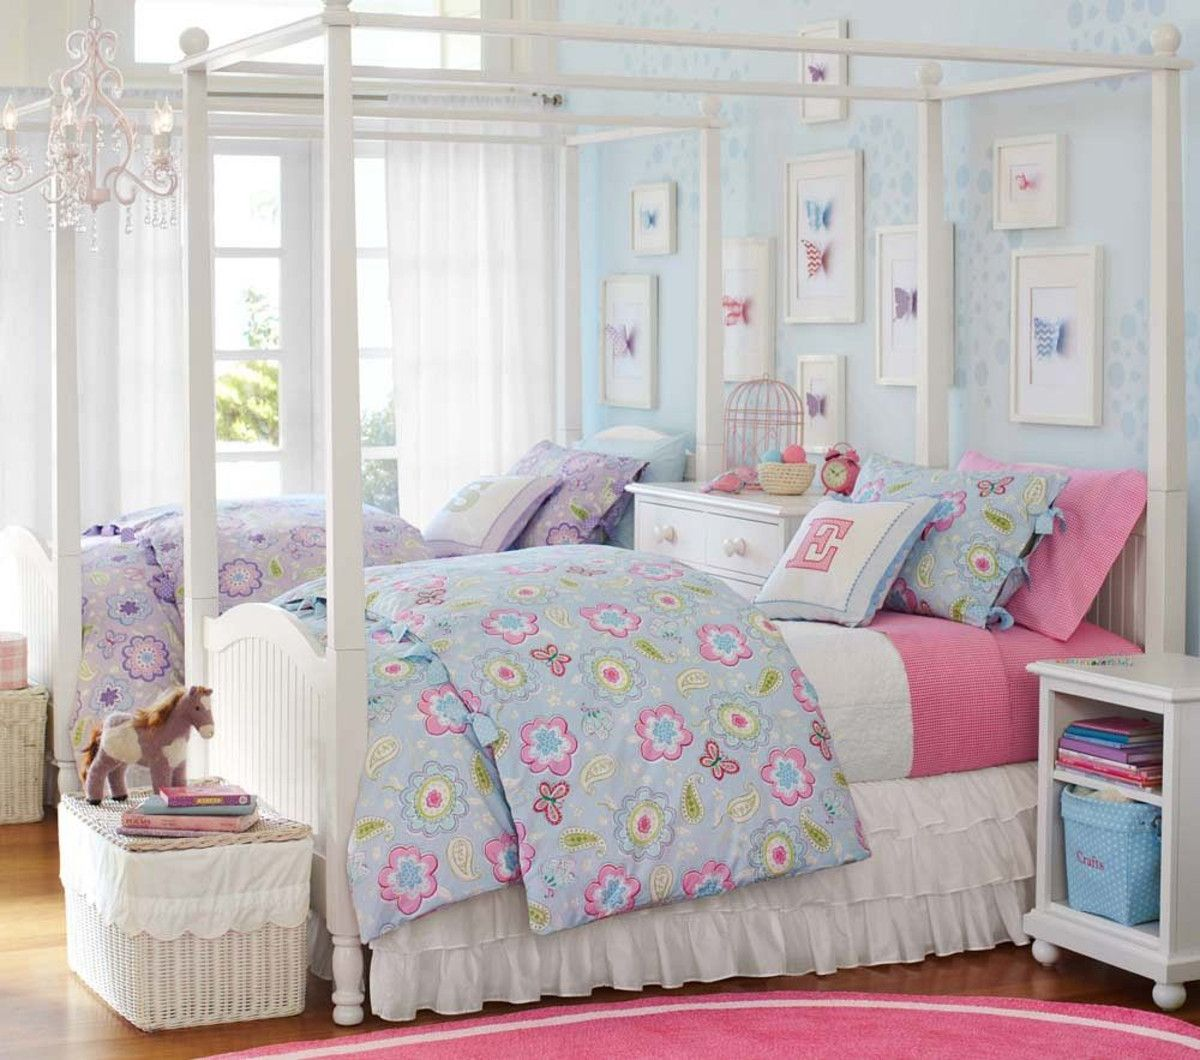 Catalina Canopy Bed Pottery Barn Kids Australia